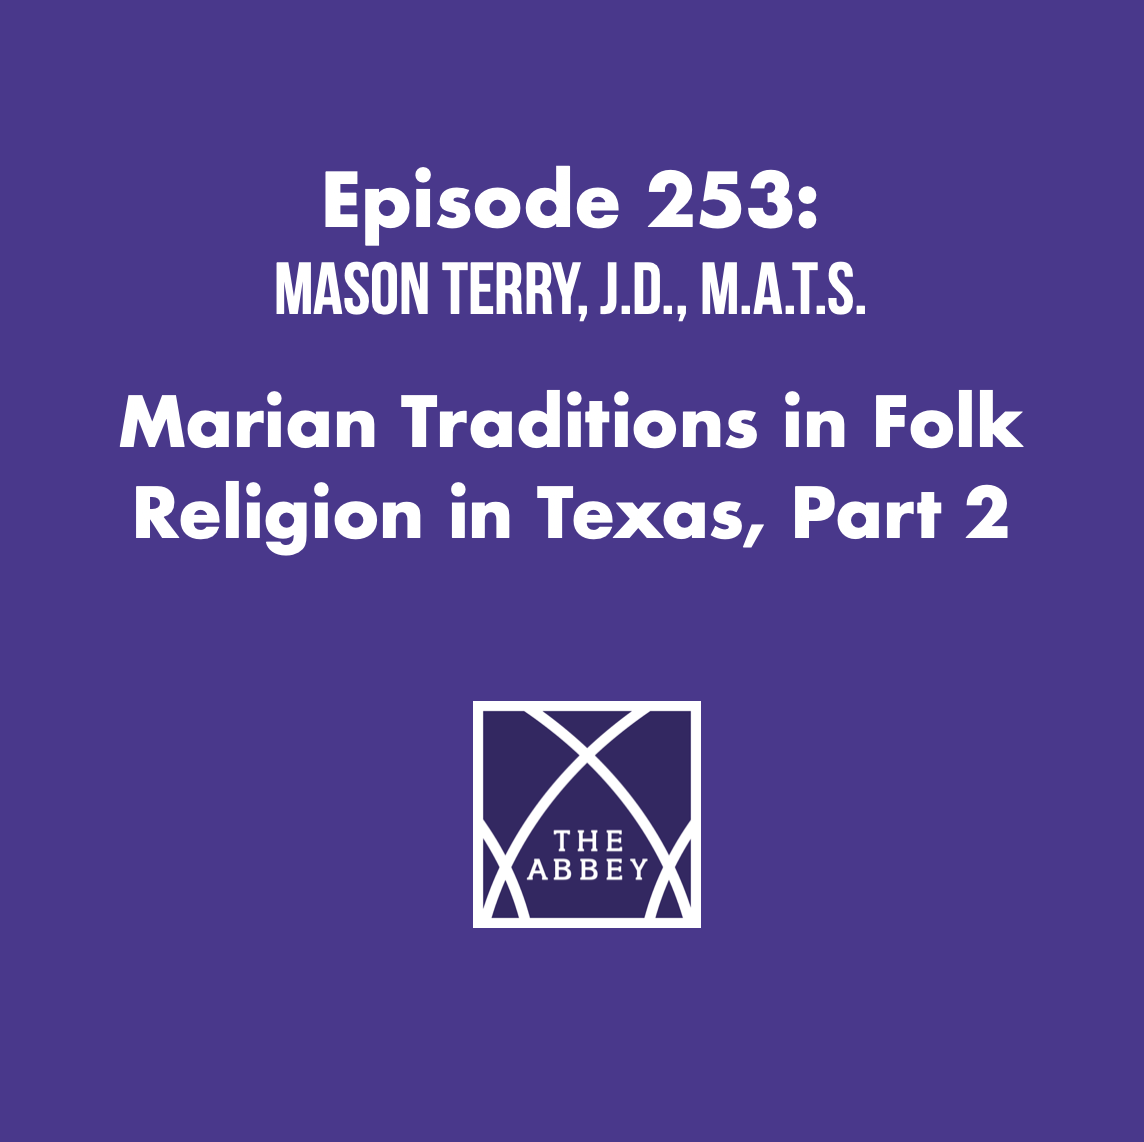 Episode 253: Marian Traditions in Folk Religion in Texas with Mason Terry, J.D., M.A.T.S.